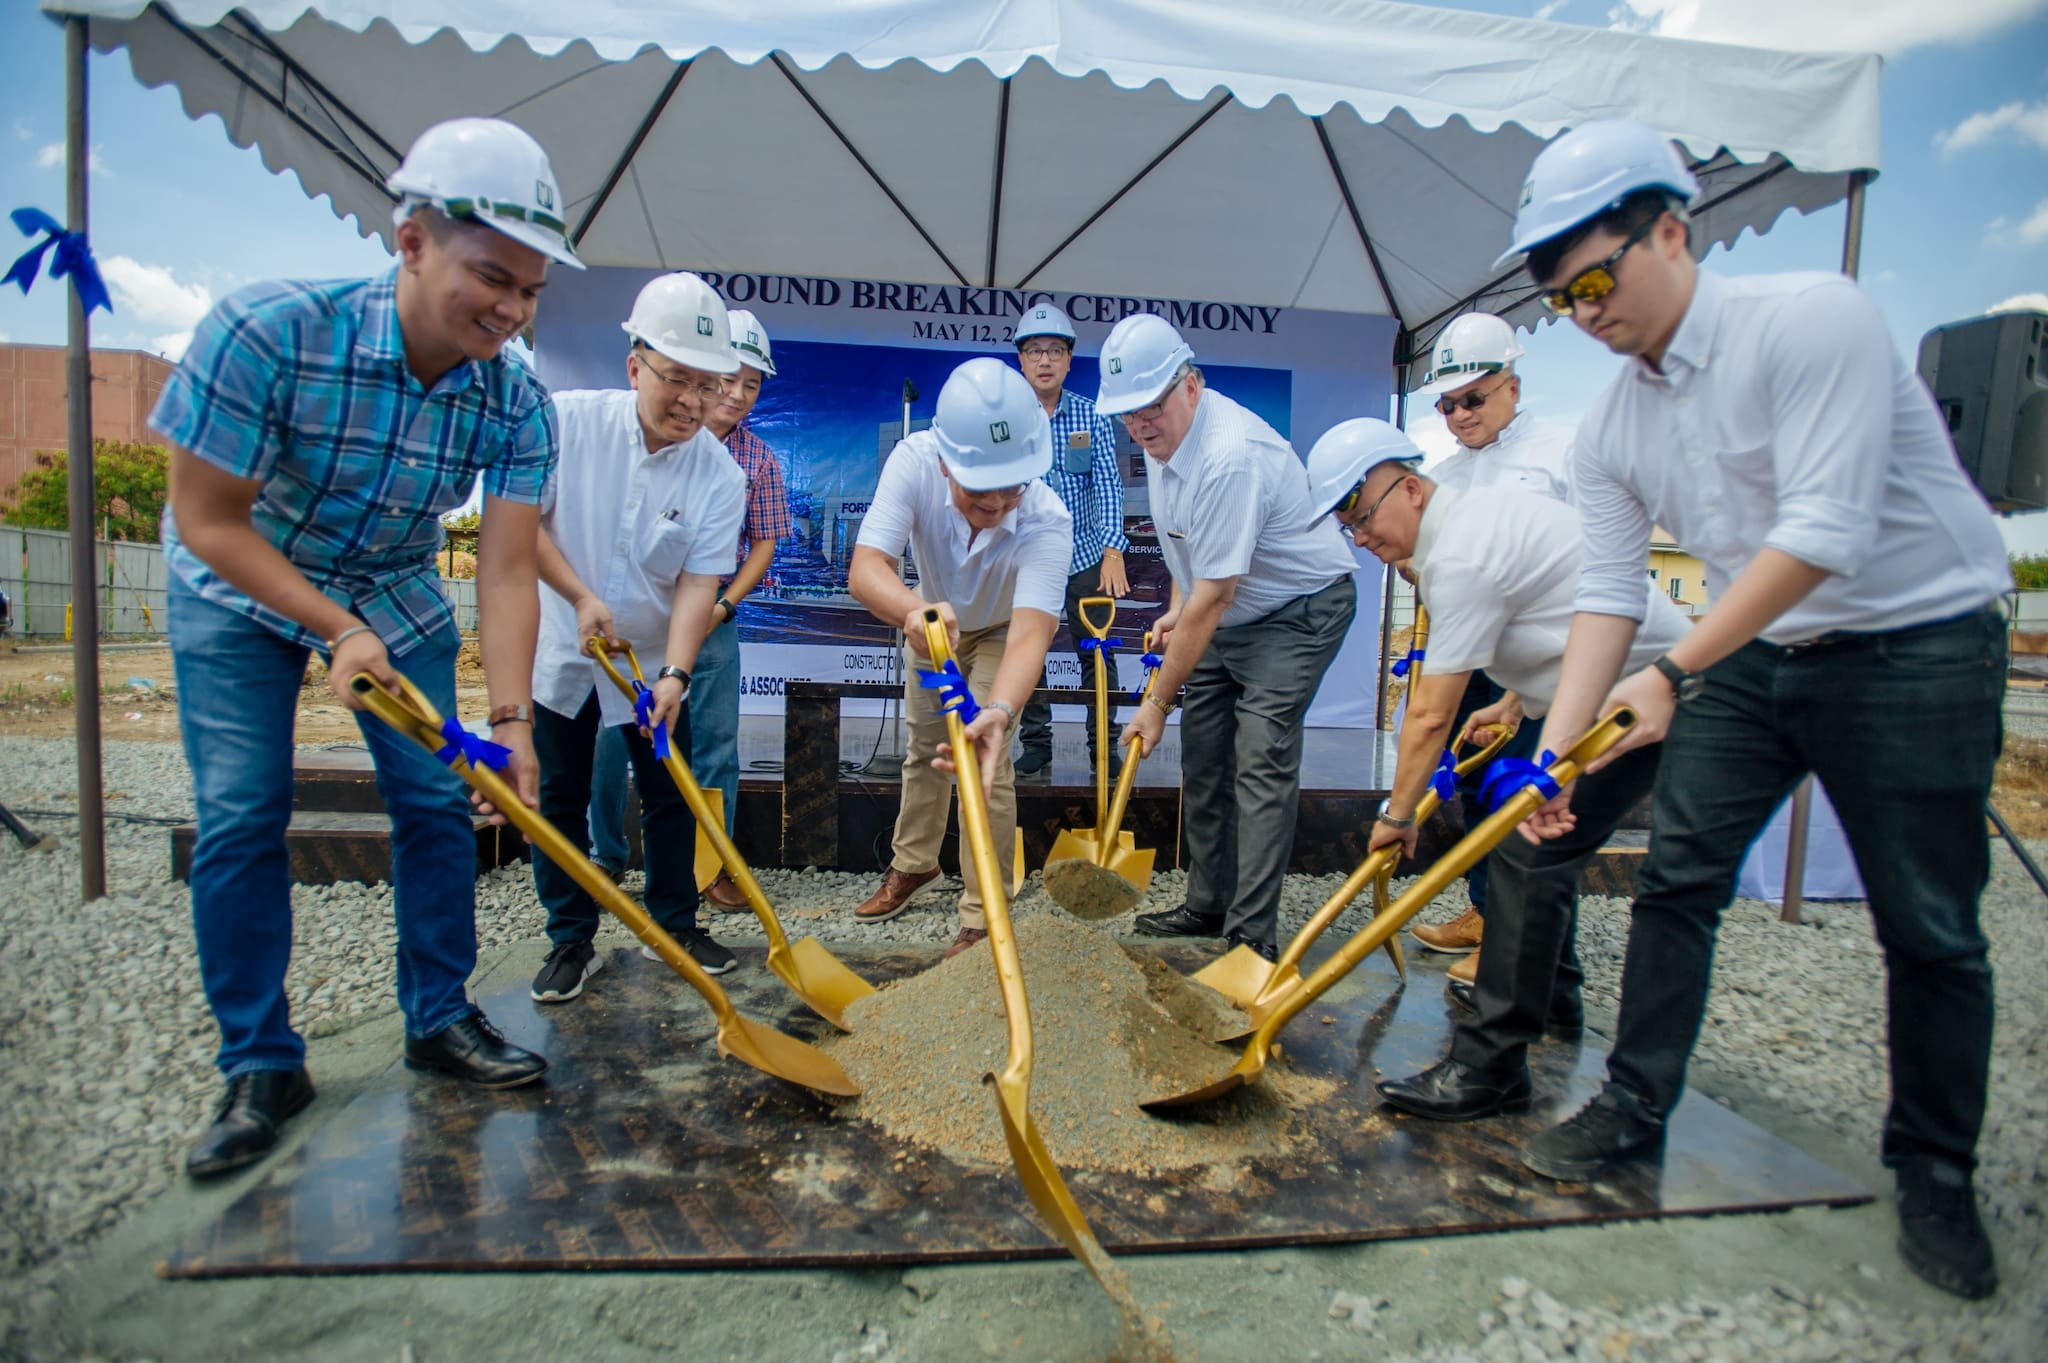 Ford Breaks Ground for New Dealership Facility in Marikina